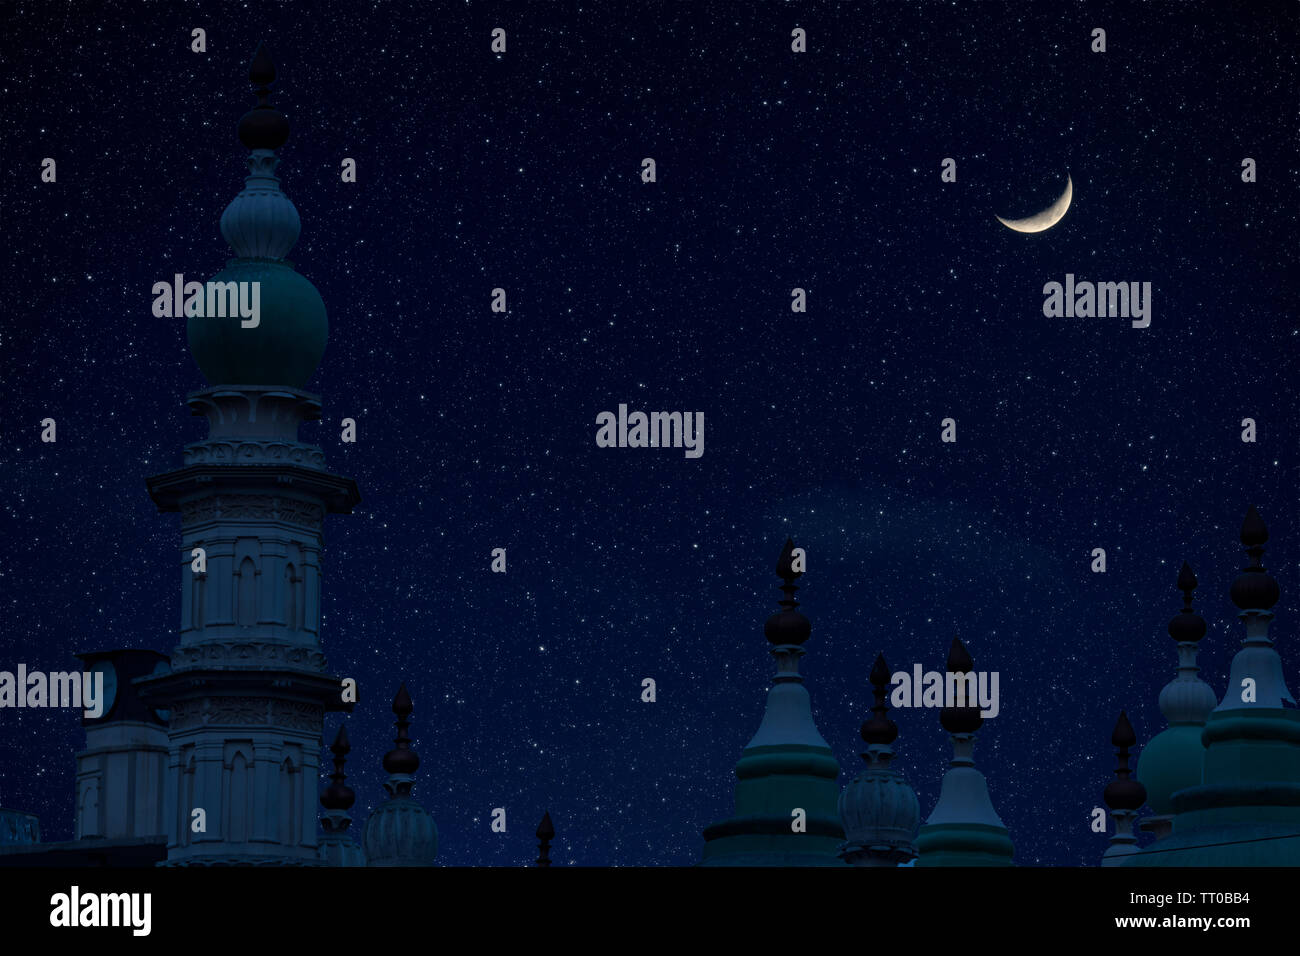 Top of mosque in Eid Ul fitr night with moon and star in night sky - Stock Image